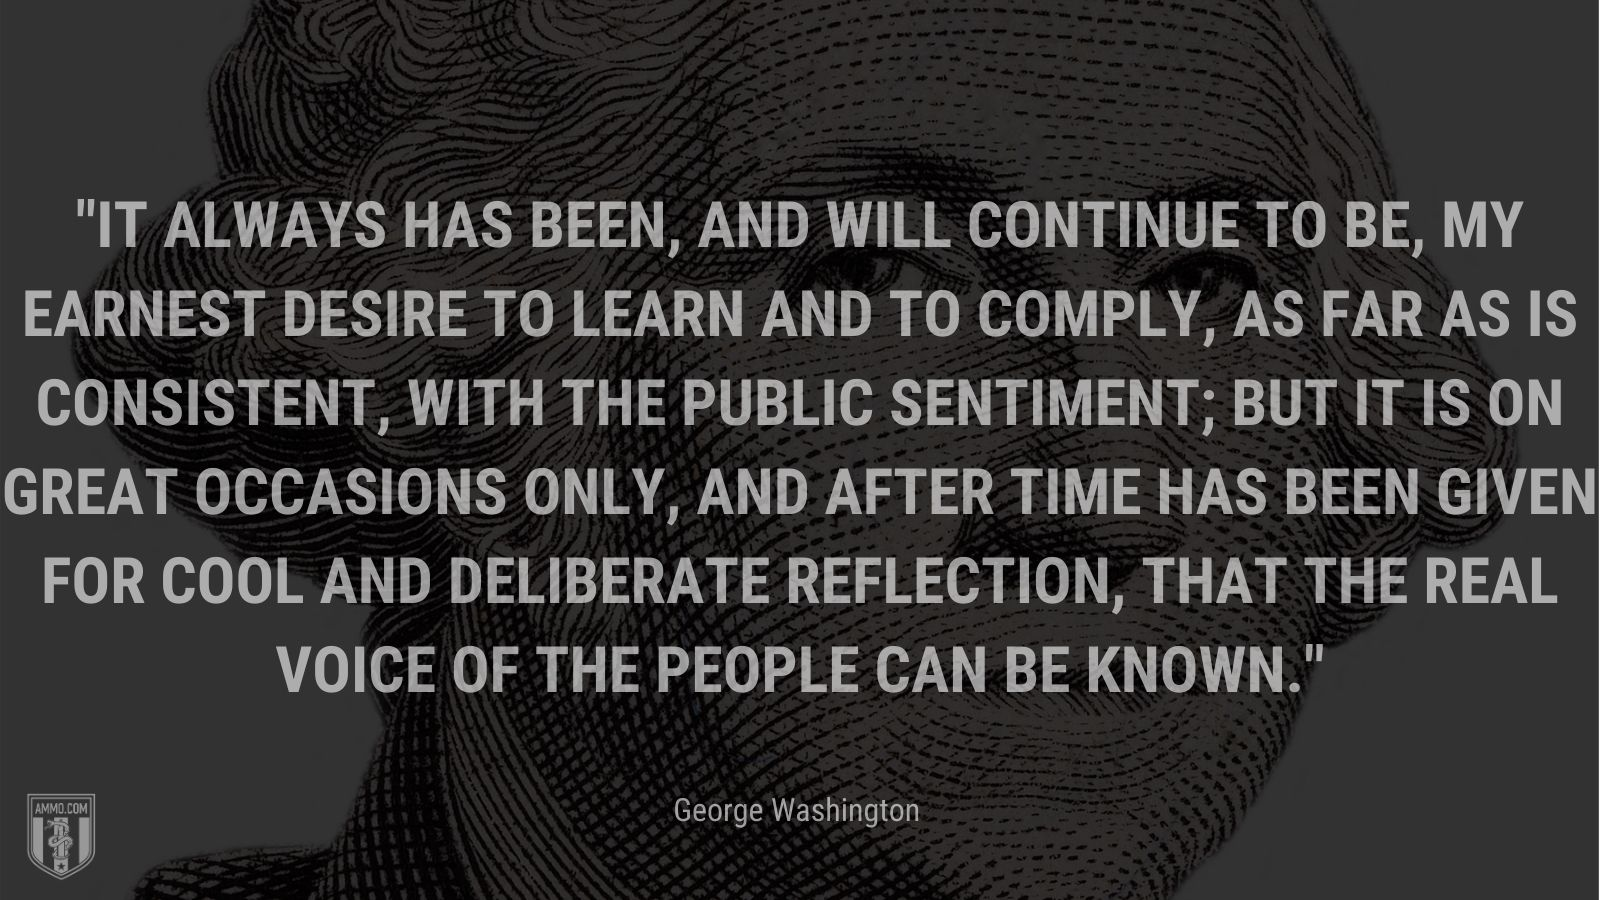 """""""It always has been, and will continue to be, my earnest desire to learn and to comply, as far as is consistent, with the public sentiment; but it is on great occasions only, and after time has been given for cool and deliberate reflection, that the real voice of the people can be known."""" - George Washington"""